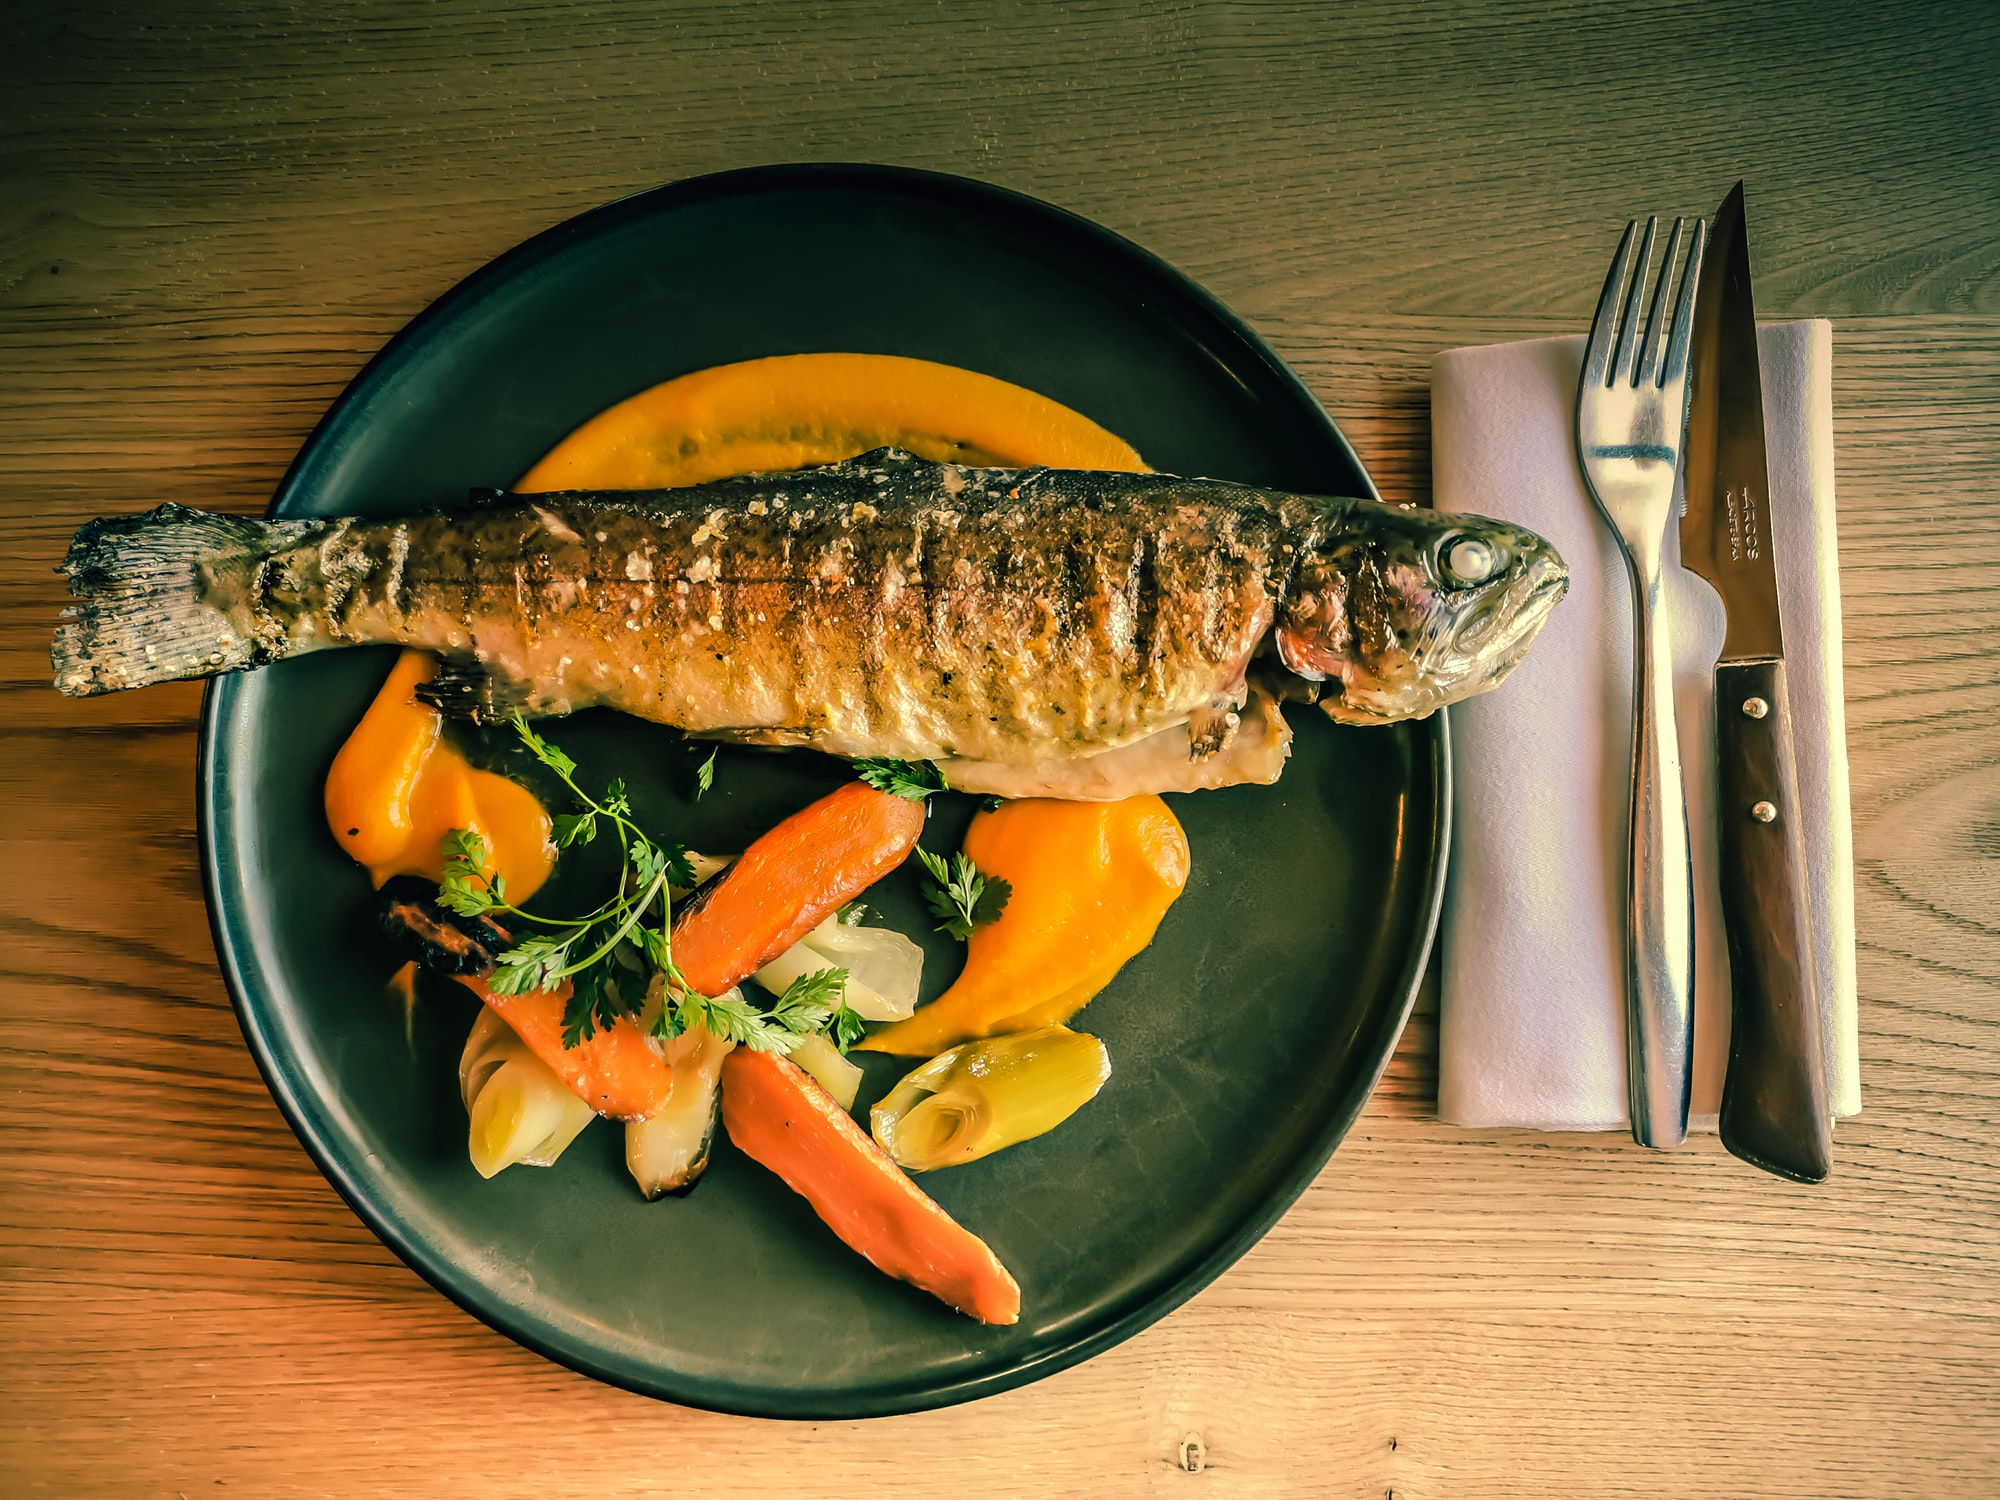 trout is served